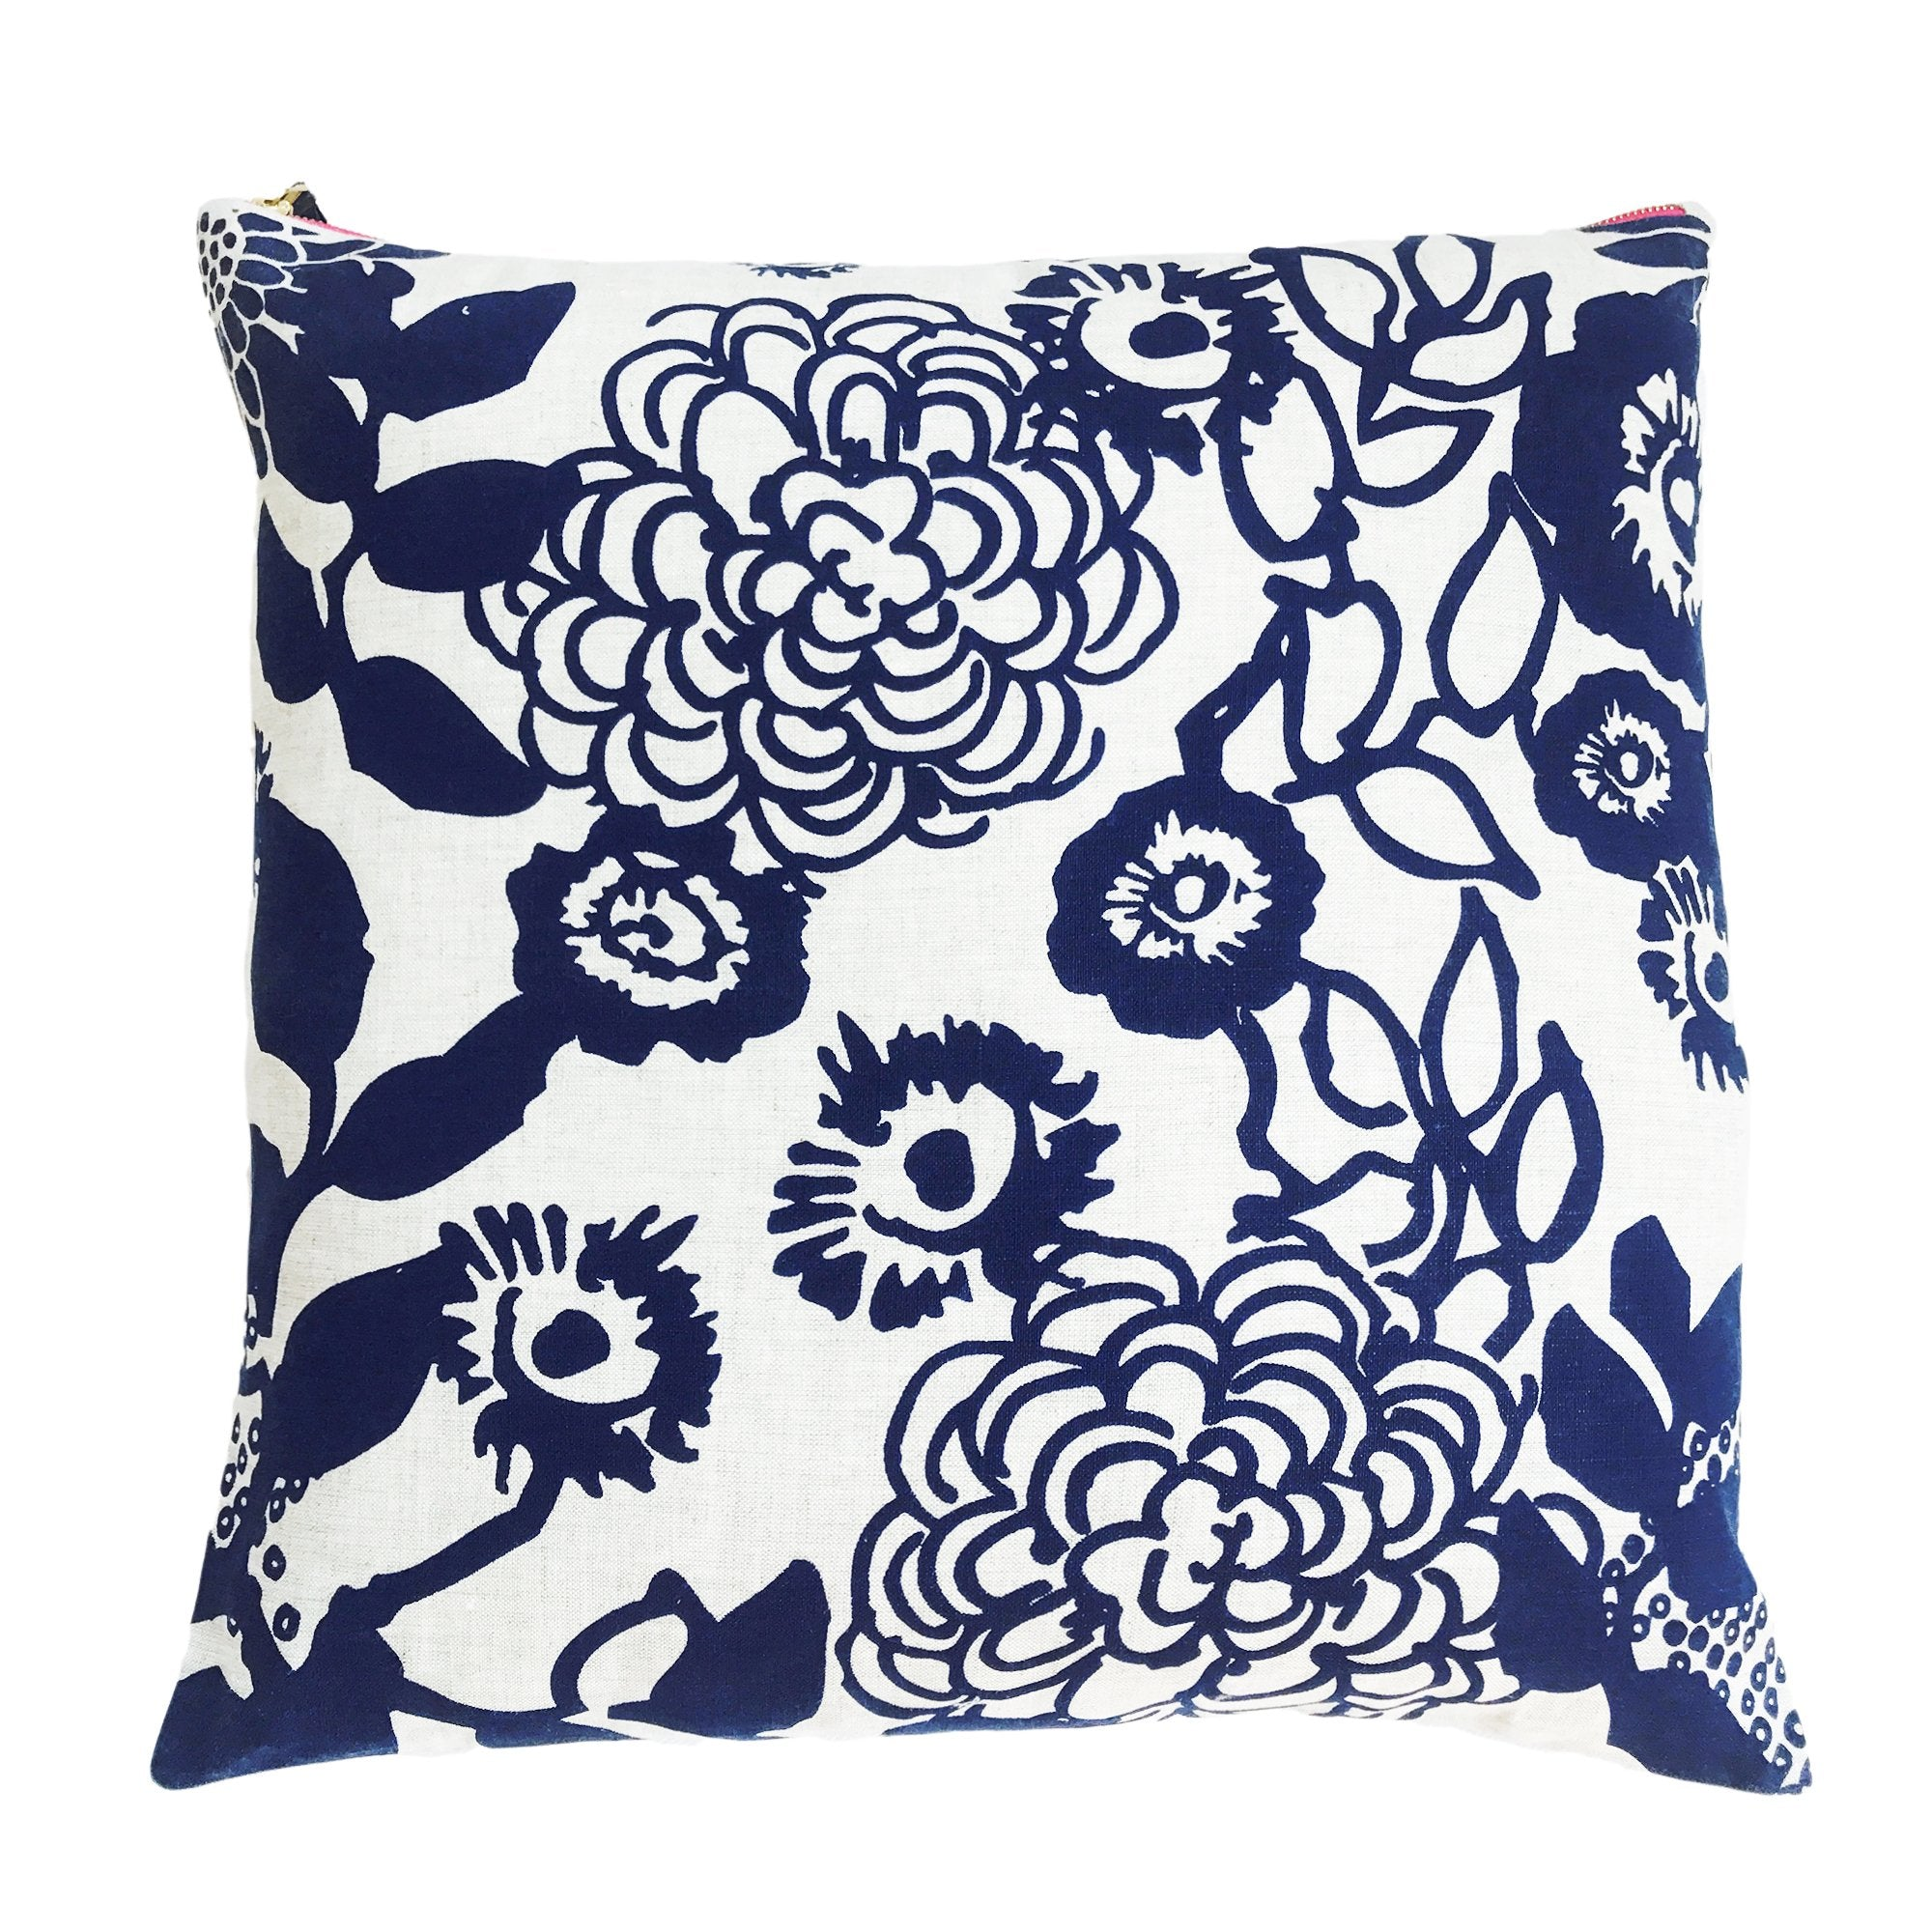 NAVY FLORAL GARDEN LINEN PILLOW